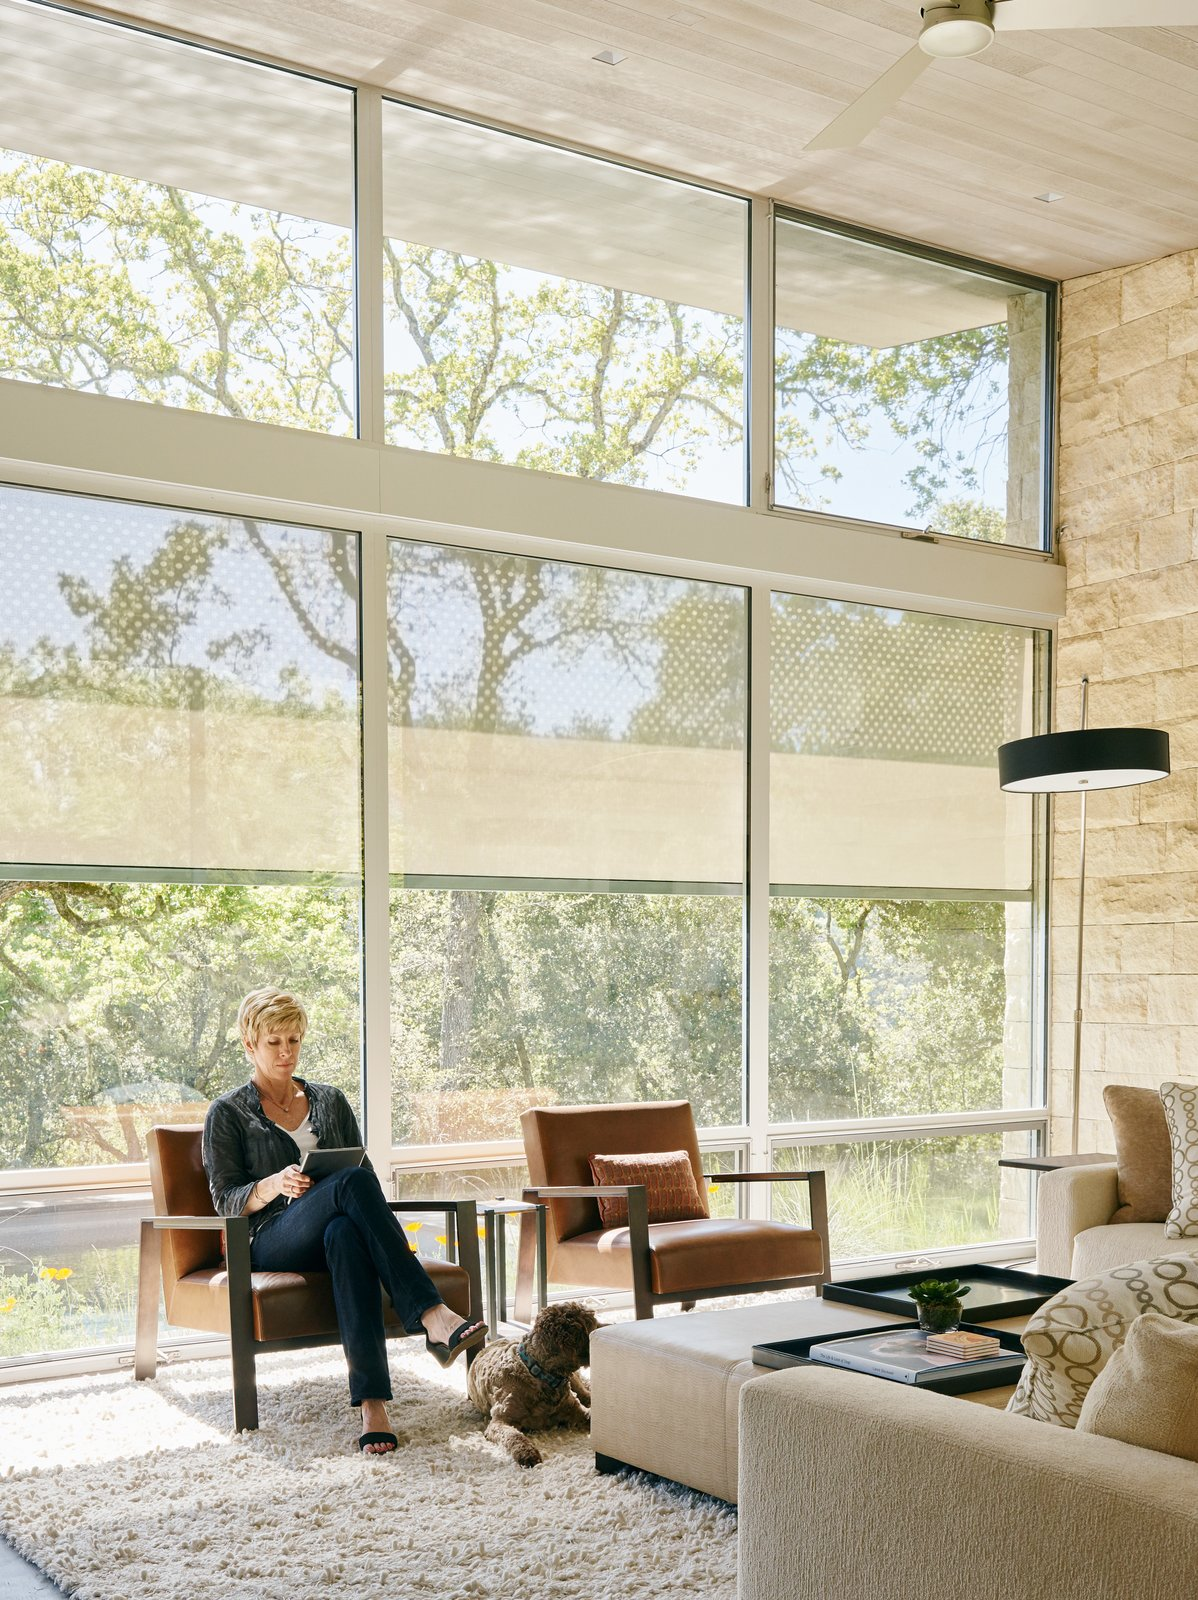 A Savant system gives the residents centralized control of the lighting, heating, audio, and more. Mitcie unwinds in a Linden chair by Holly Hunt in the living room.